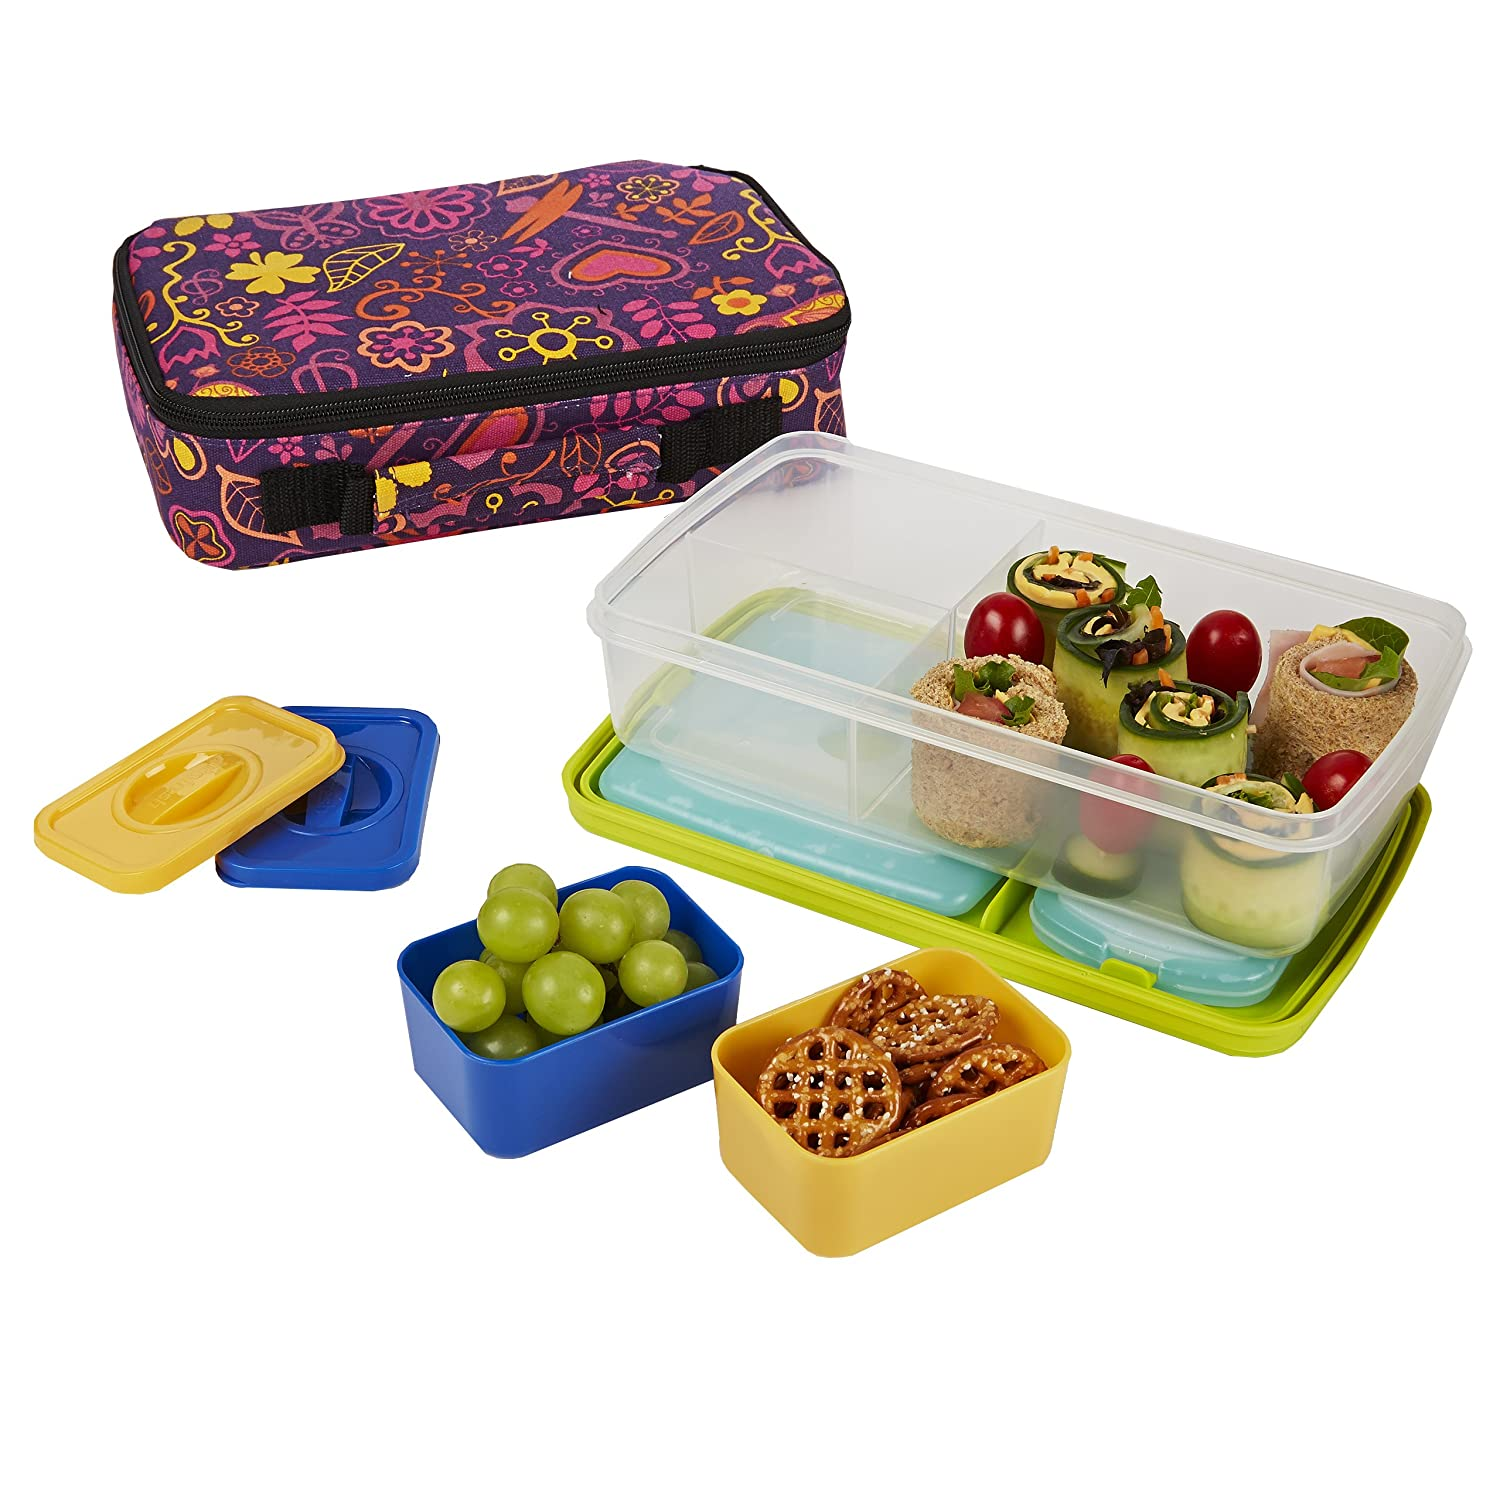 Amazon.com Fit u0026 Fresh Bento Box Lunch Kit with Reusable BPA-Free Removable Plastic Containers Insulated Lunch Bag and Ice Packs Kitchen u0026 Dining  sc 1 st  Amazon.com & Amazon.com: Fit u0026 Fresh Bento Box Lunch Kit with Reusable BPA-Free ... Aboutintivar.Com